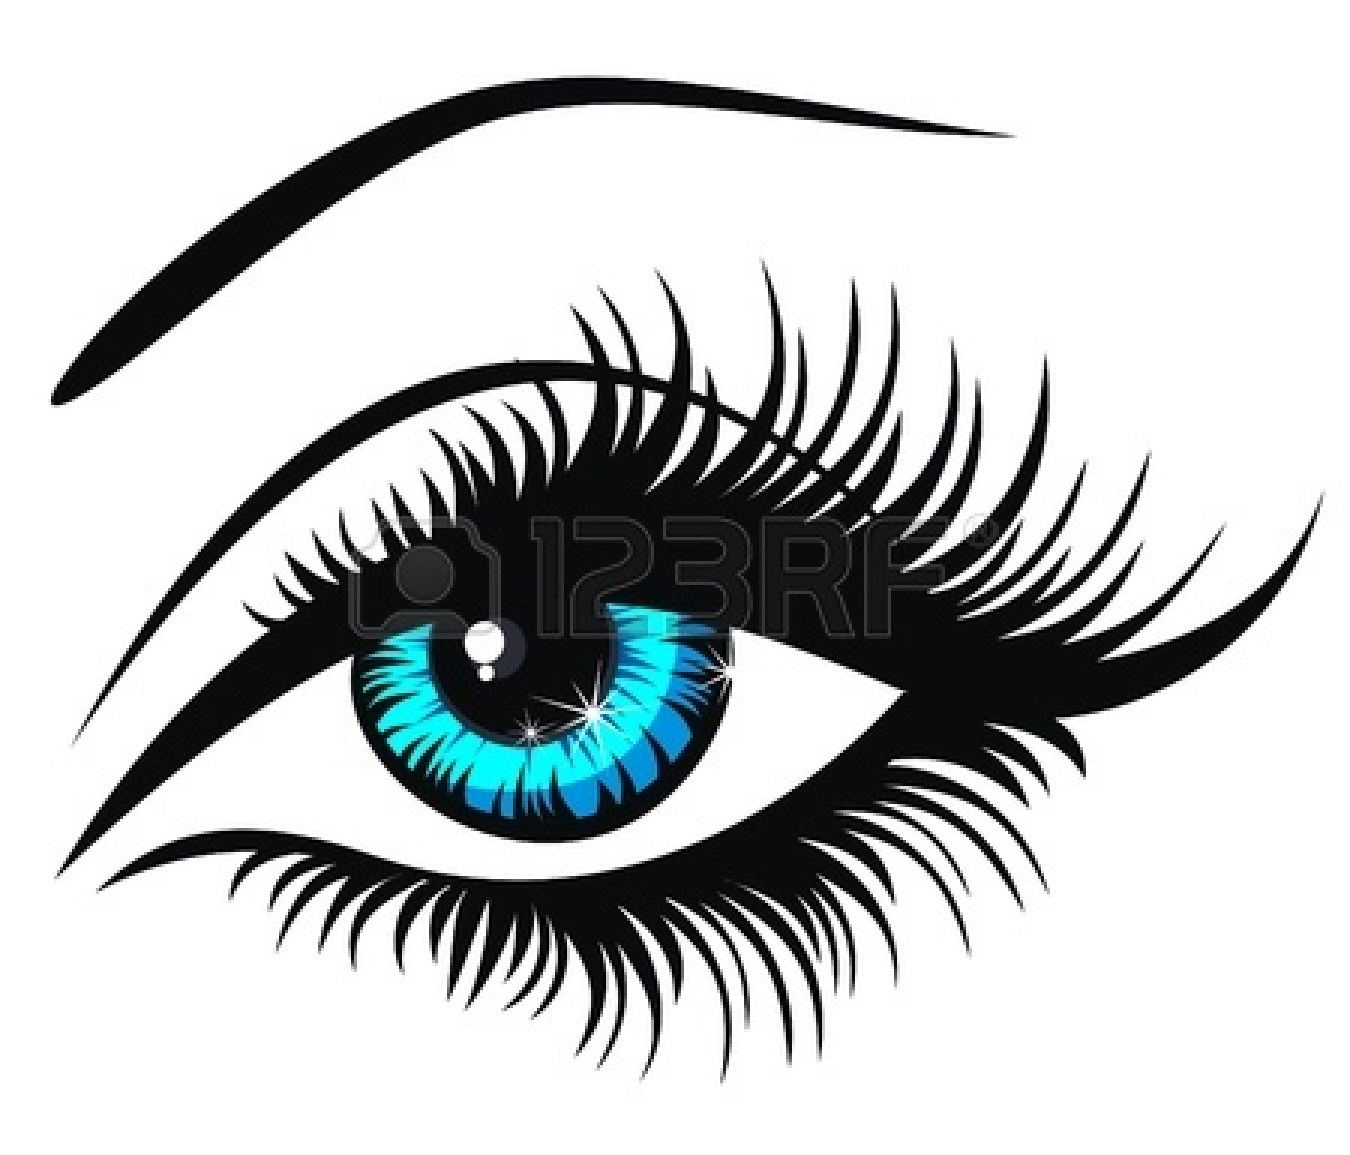 Eyebrow vector illustration projects. Afro clipart eye